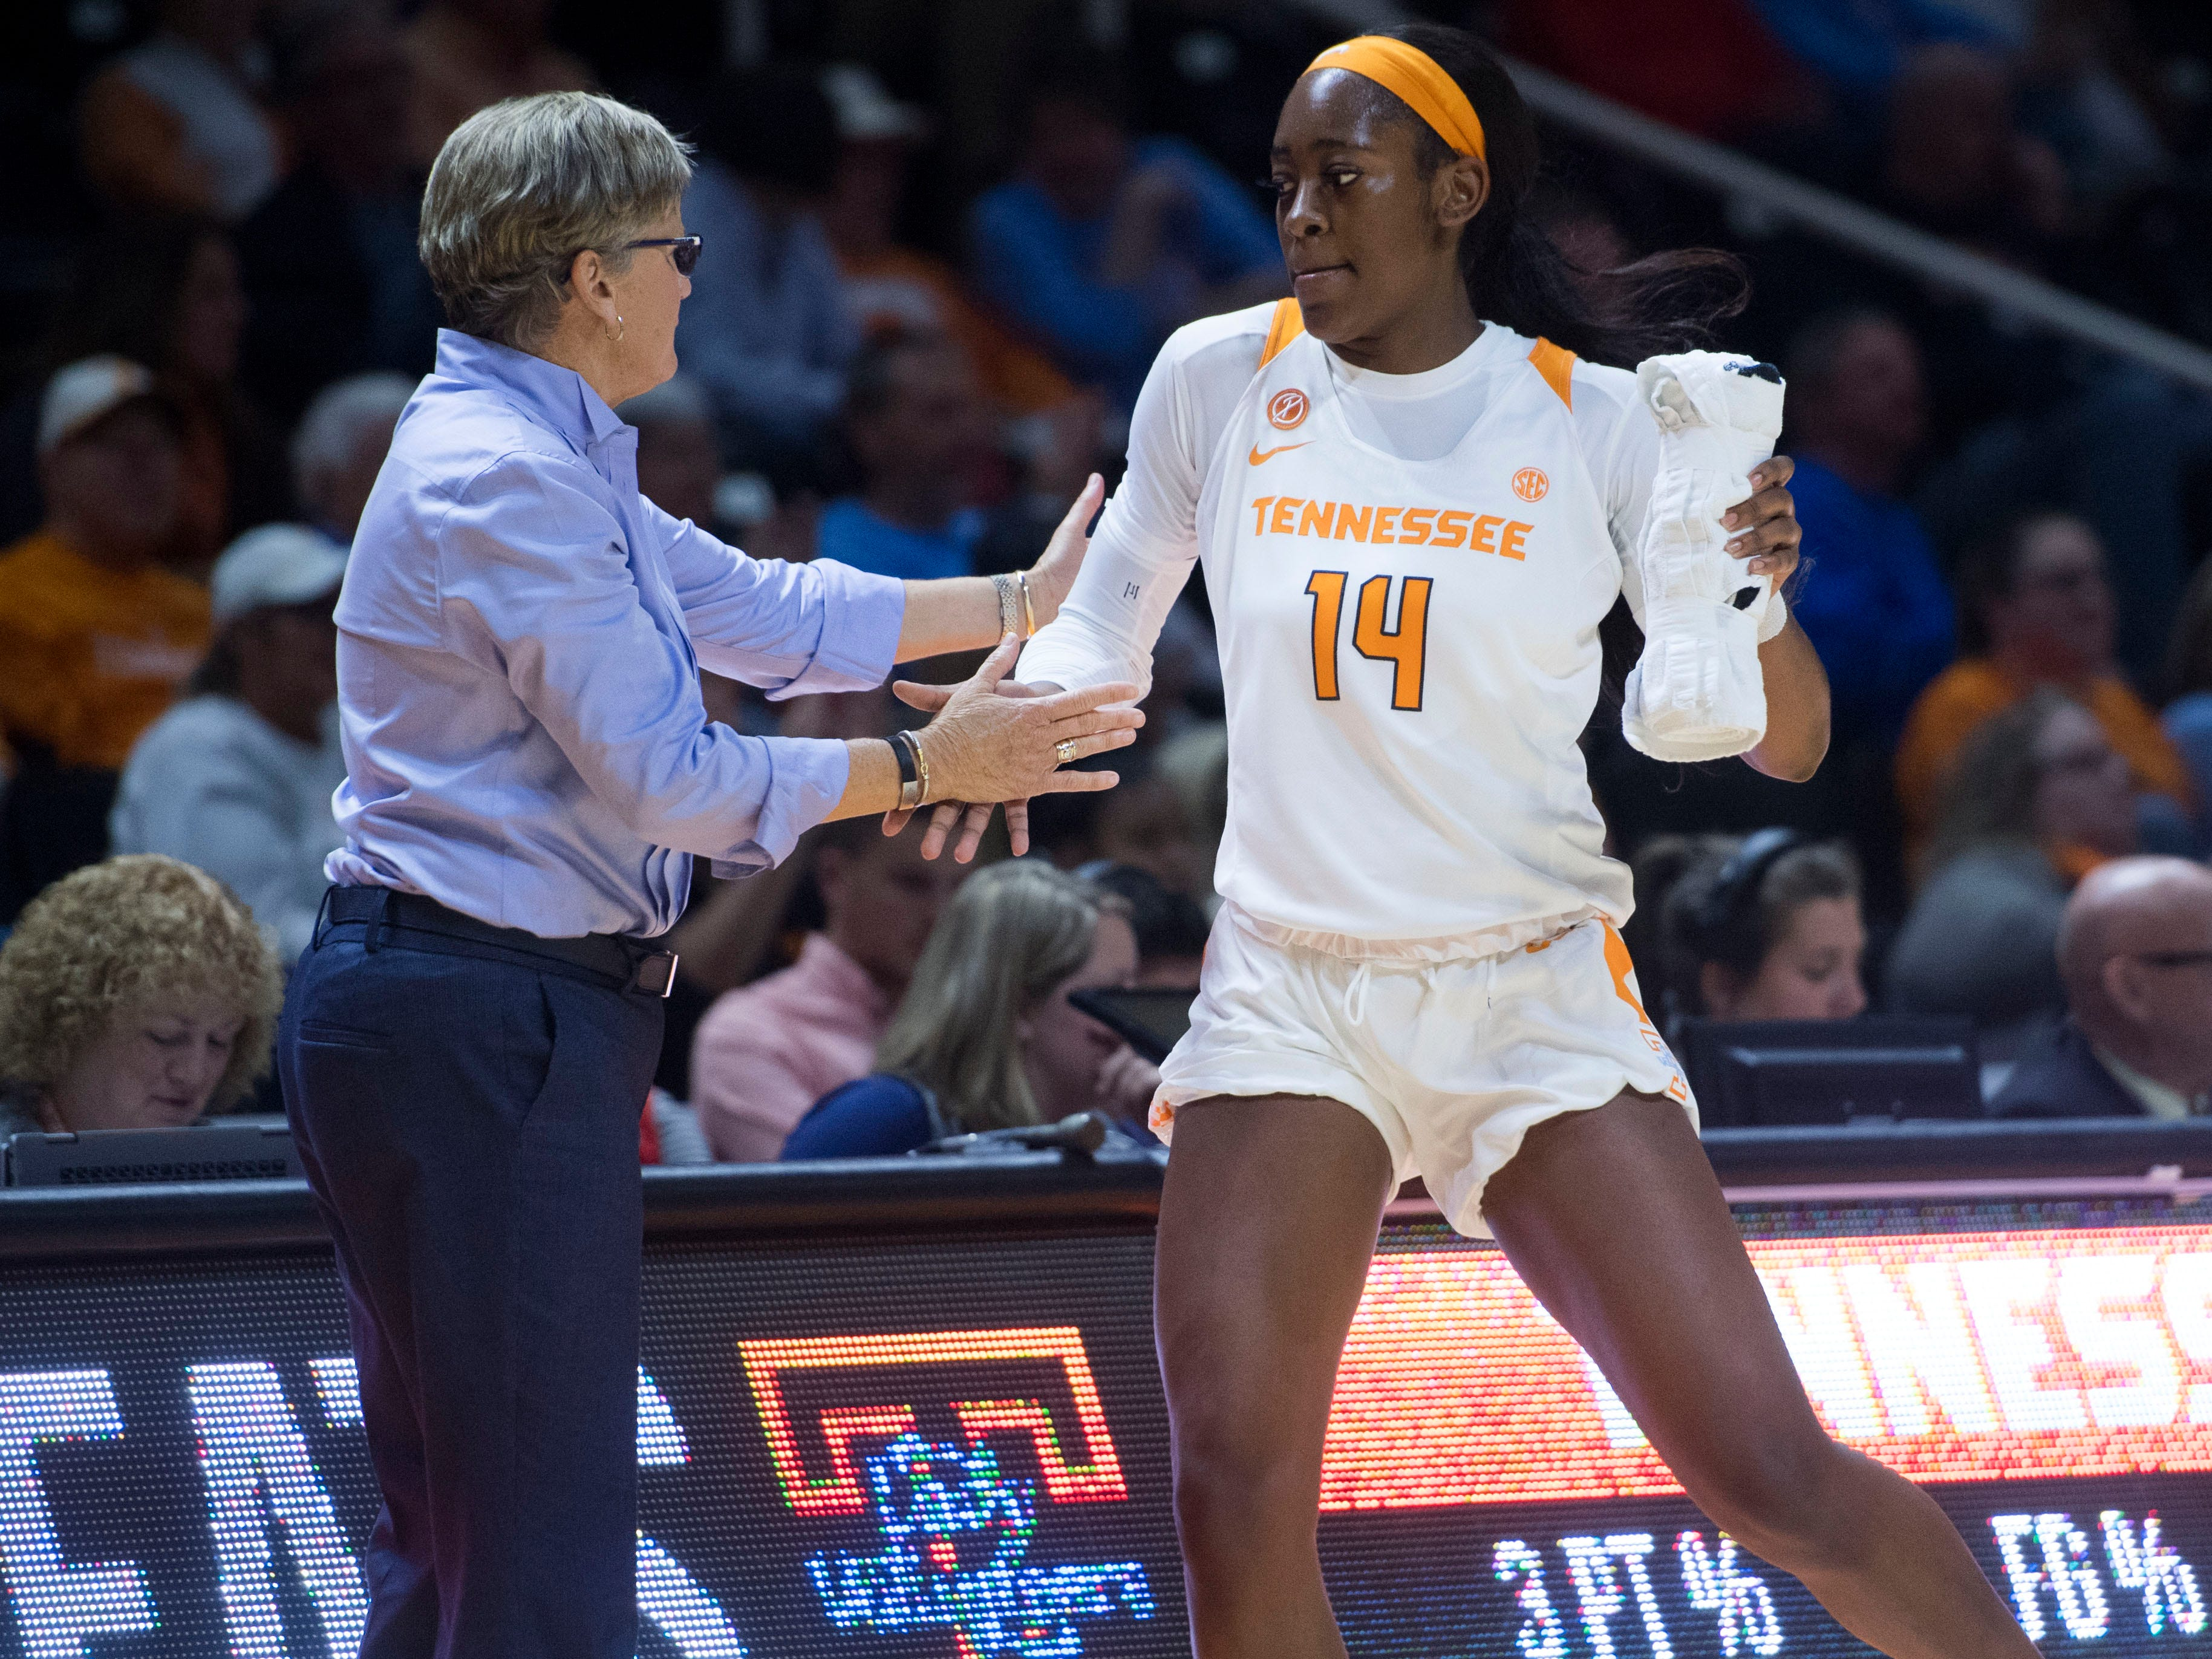 Tennessee's Zaay Green (14) is encouraged by Tennessee head coach Holly Warlick as she comes off the court during the exhibition game against Carson-Newman on Monday, November 5, 2018.